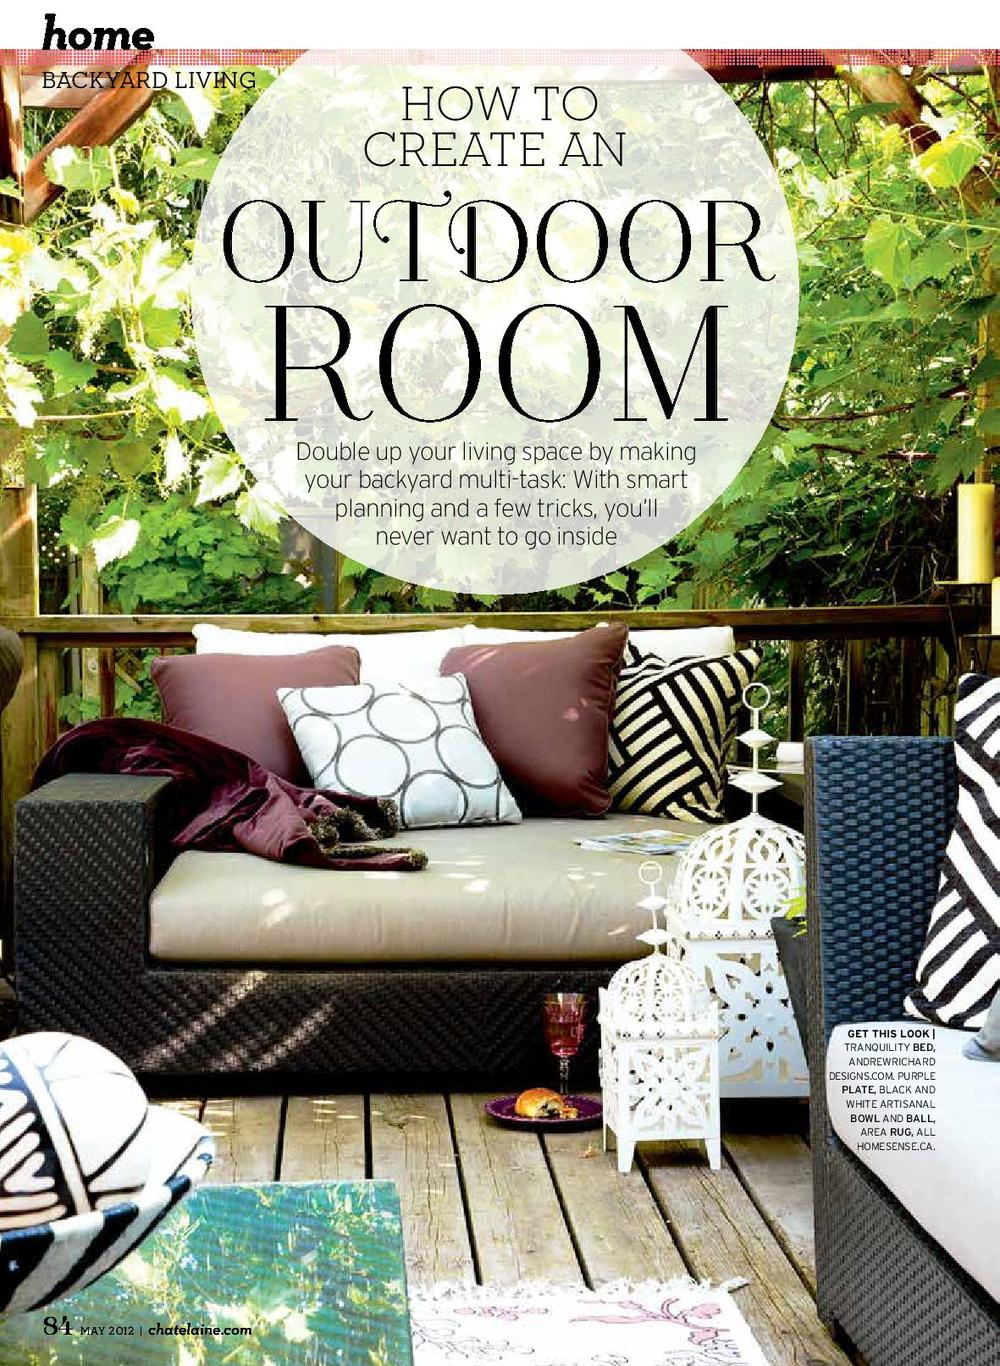 outdoors may 2012-page-001.jpg